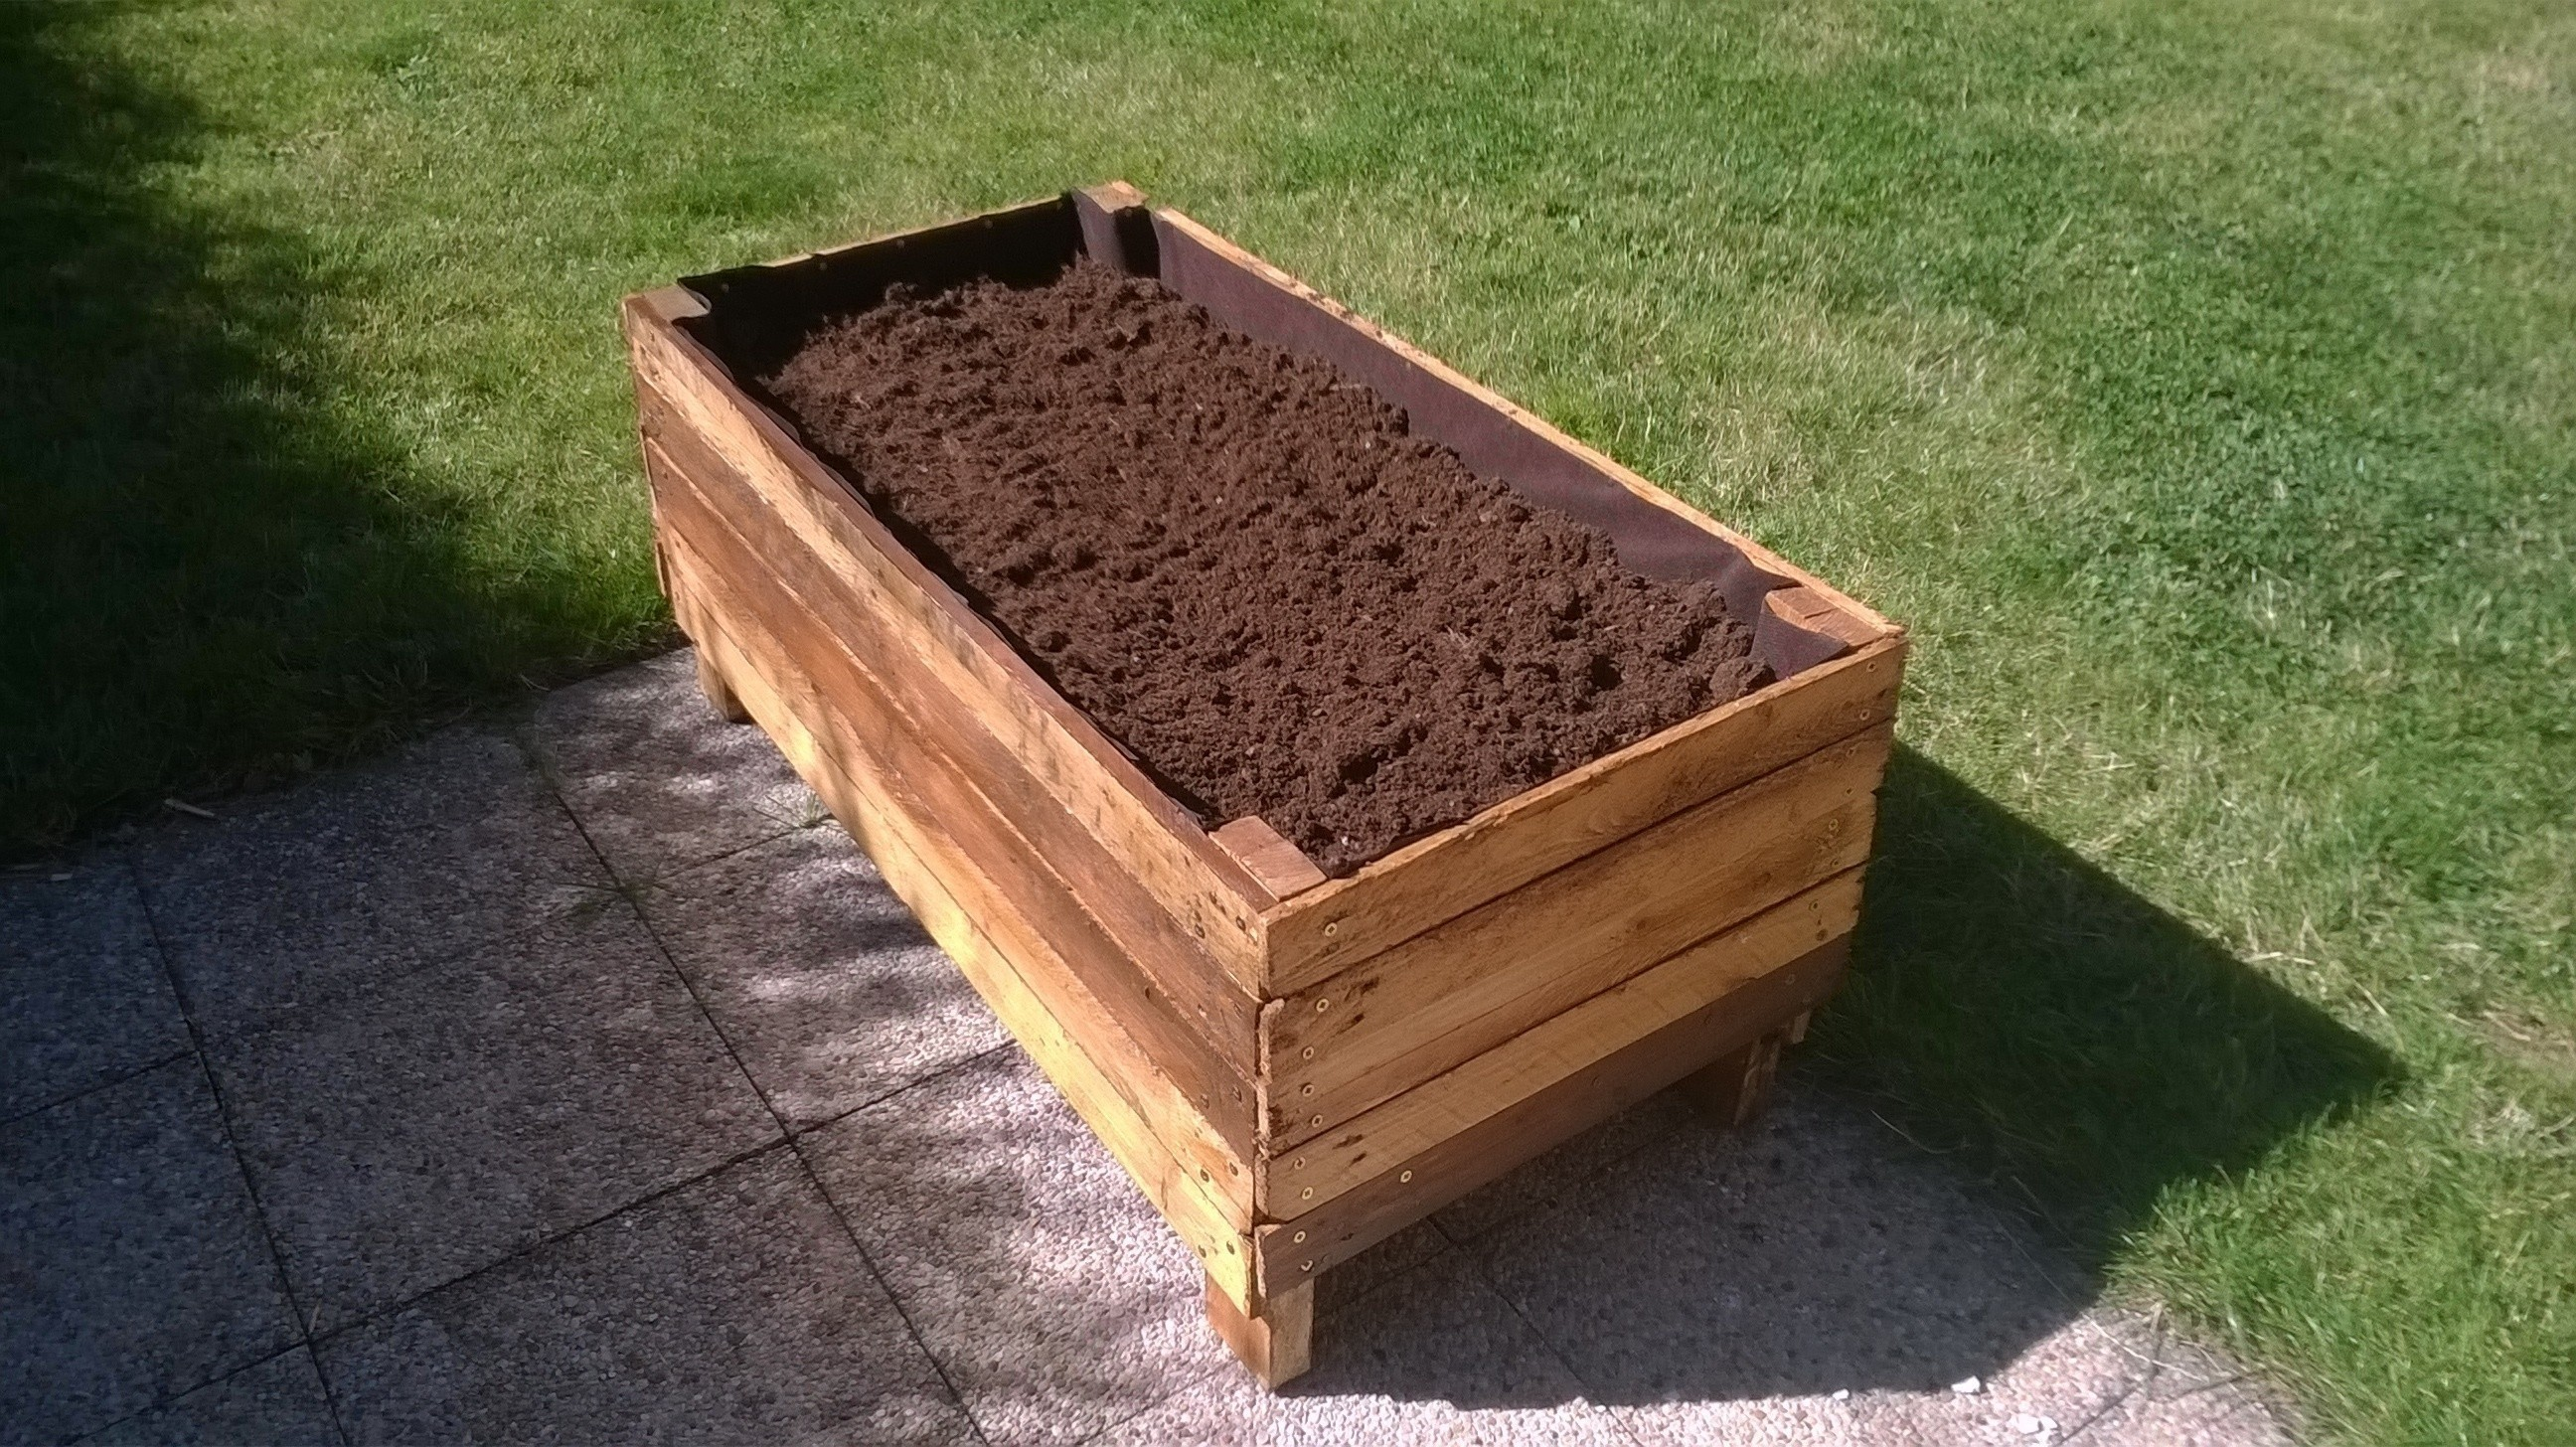 Pallet planter how to make a pallet planter home diy for Making planters from pallets